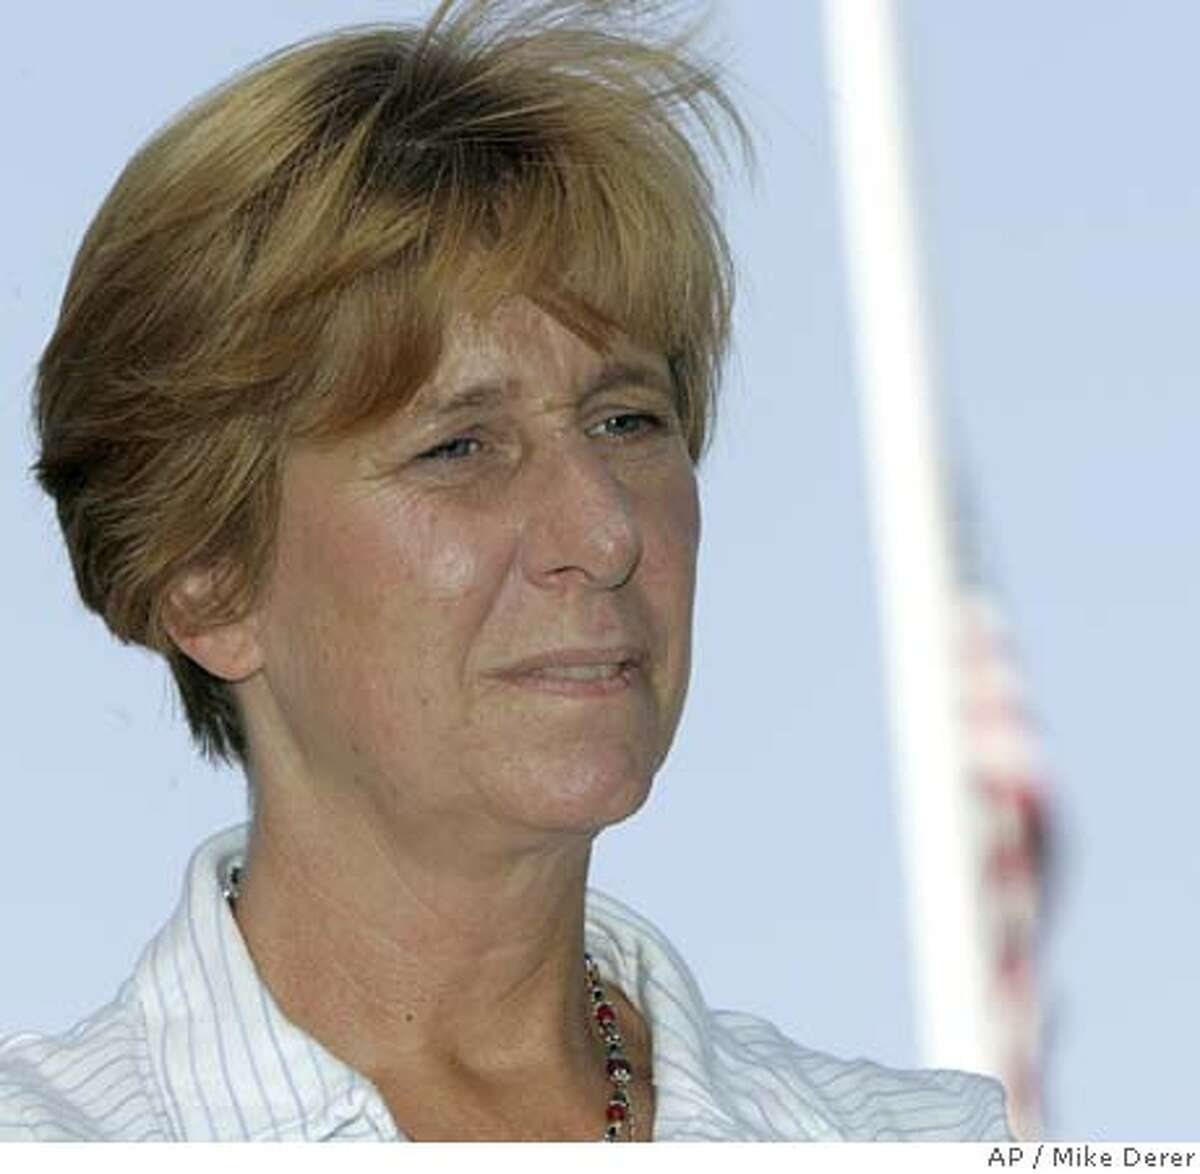 Cindy Sheehan listens during a news conference in Westfield, N.J., on Monday, Sept. 12, 2005, with U.S. Rep. Frank Pallone, D-N.J. Sheehan, the California woman who camped outside President Bush's Texas ranch last month to protest the war in Iraq, which claimed her soldier son's life, said Monday she believes the U.S. never plans to leave Iraq. (AP Photo/Mike Derer)